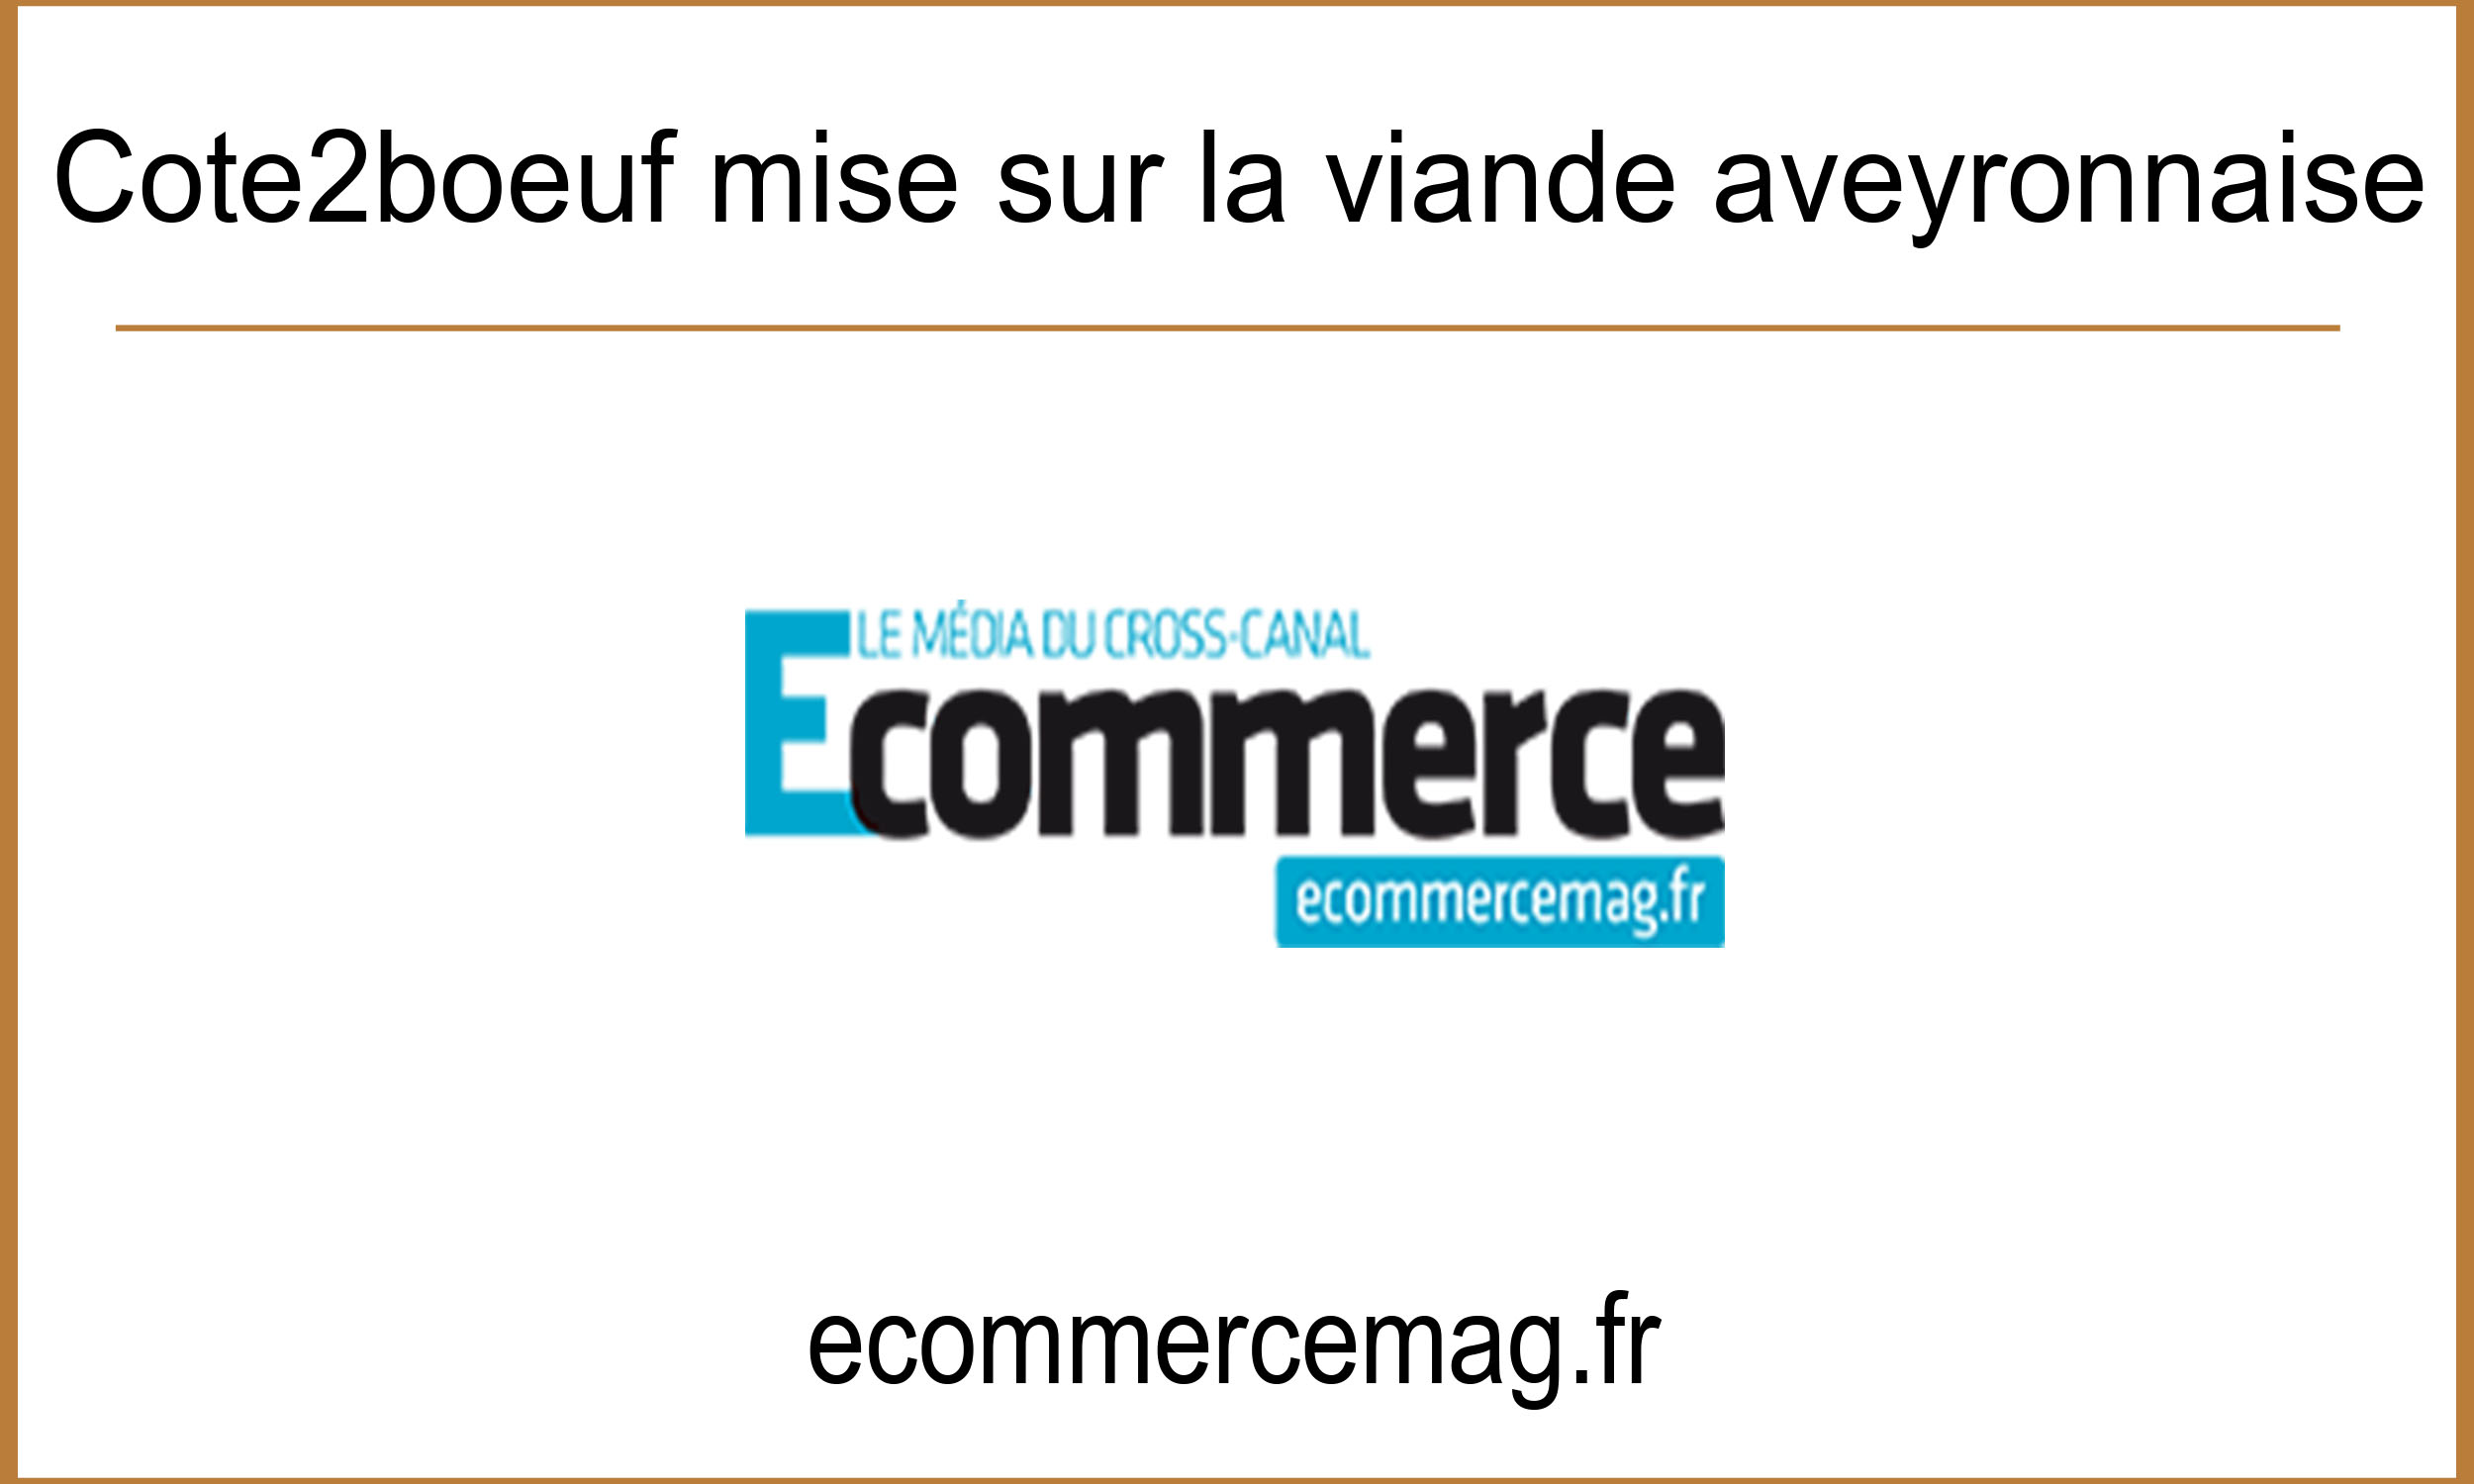 Article ecommercemag